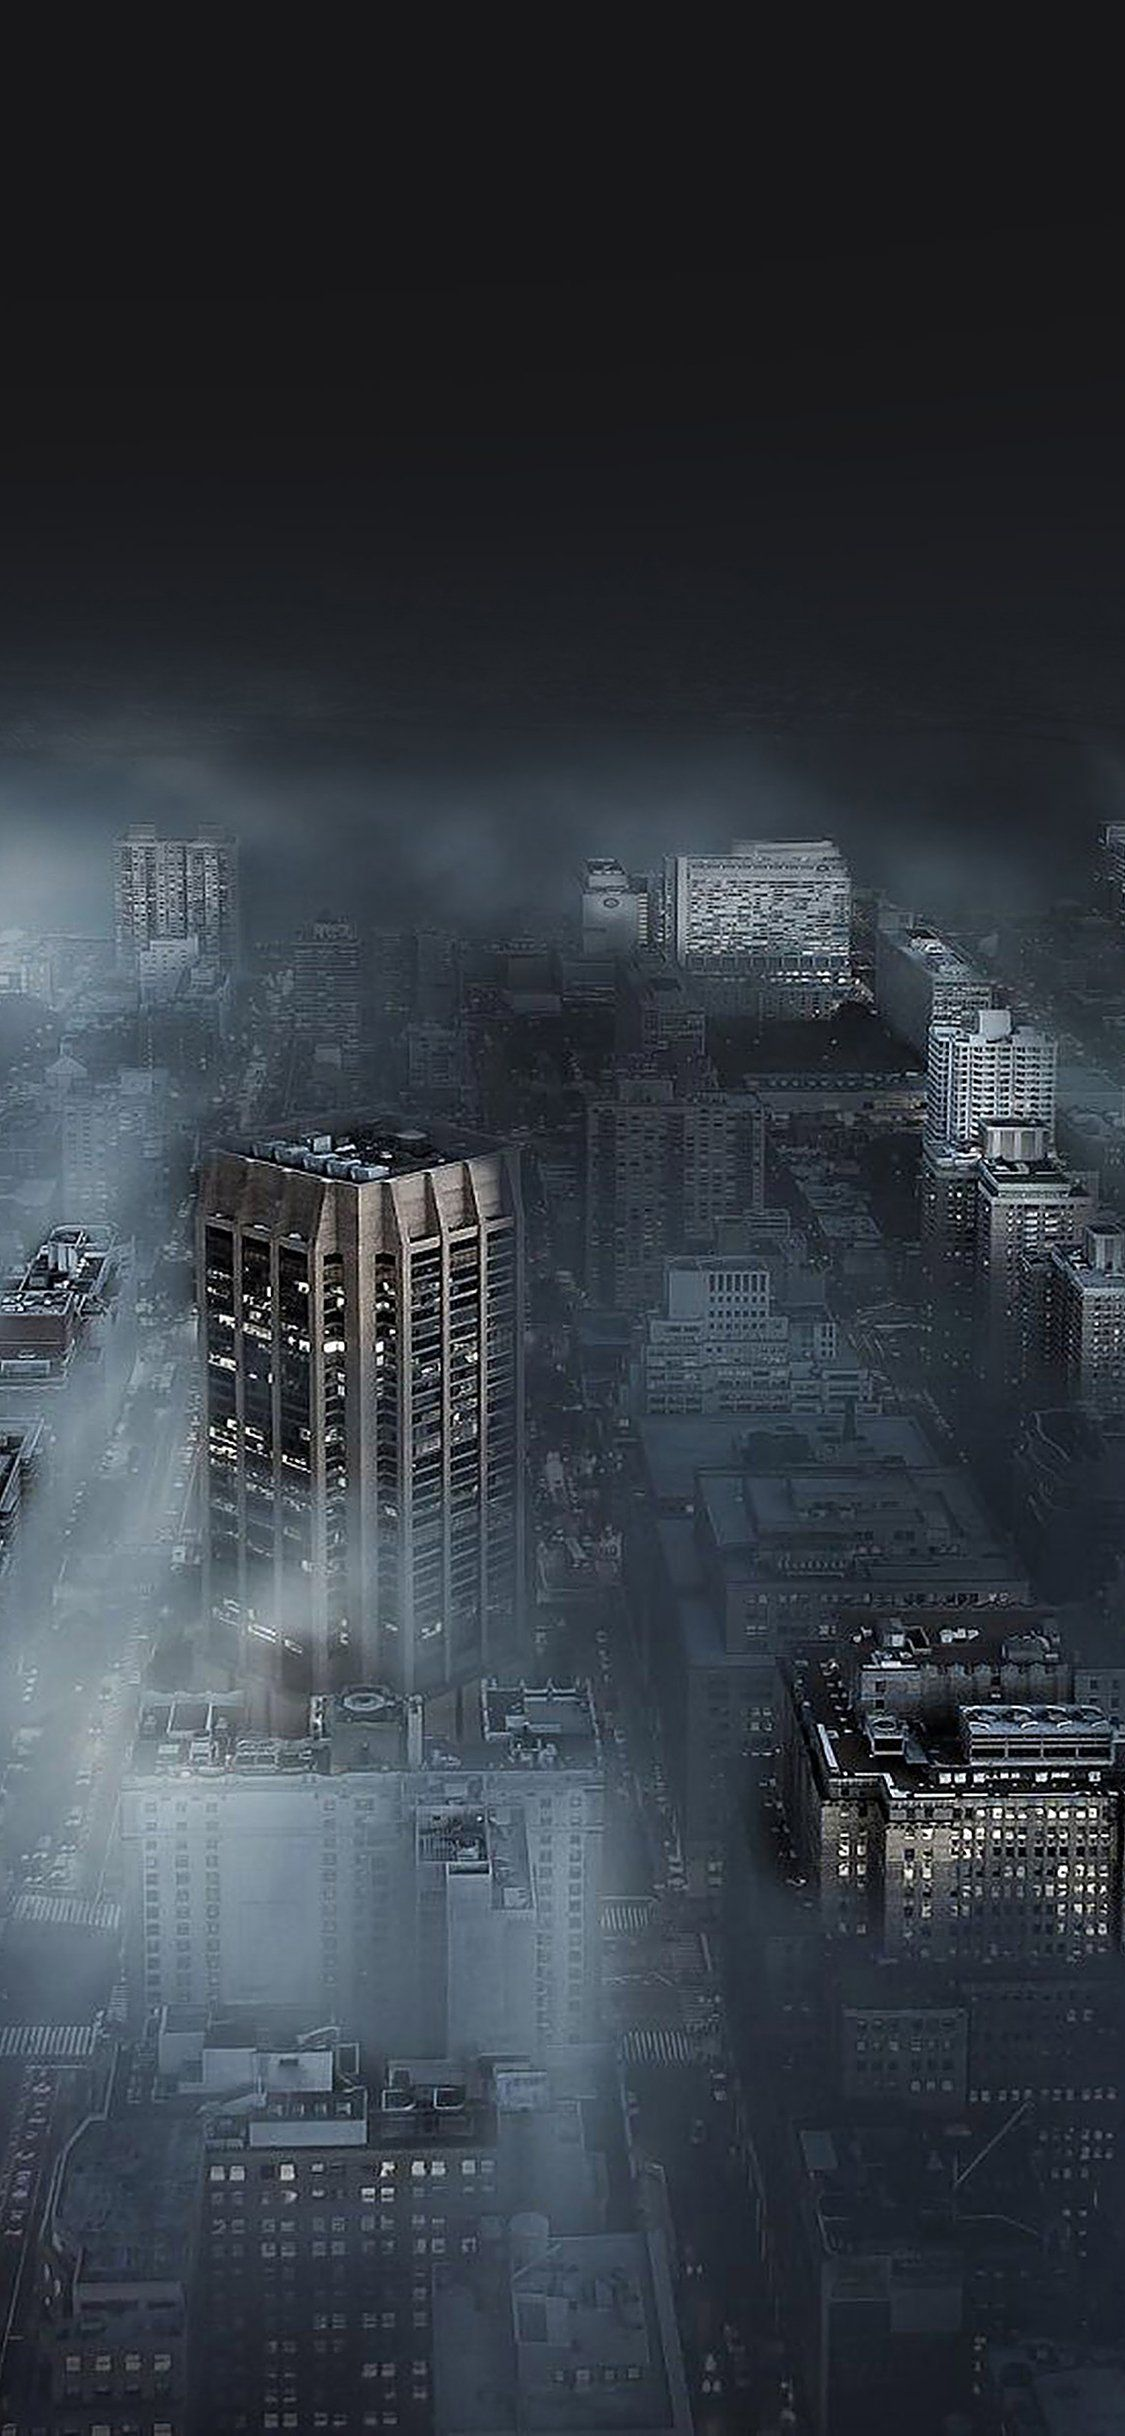 Wallpapers Beautifull Cityscape in the World: Dark Cityscape Wallpapers